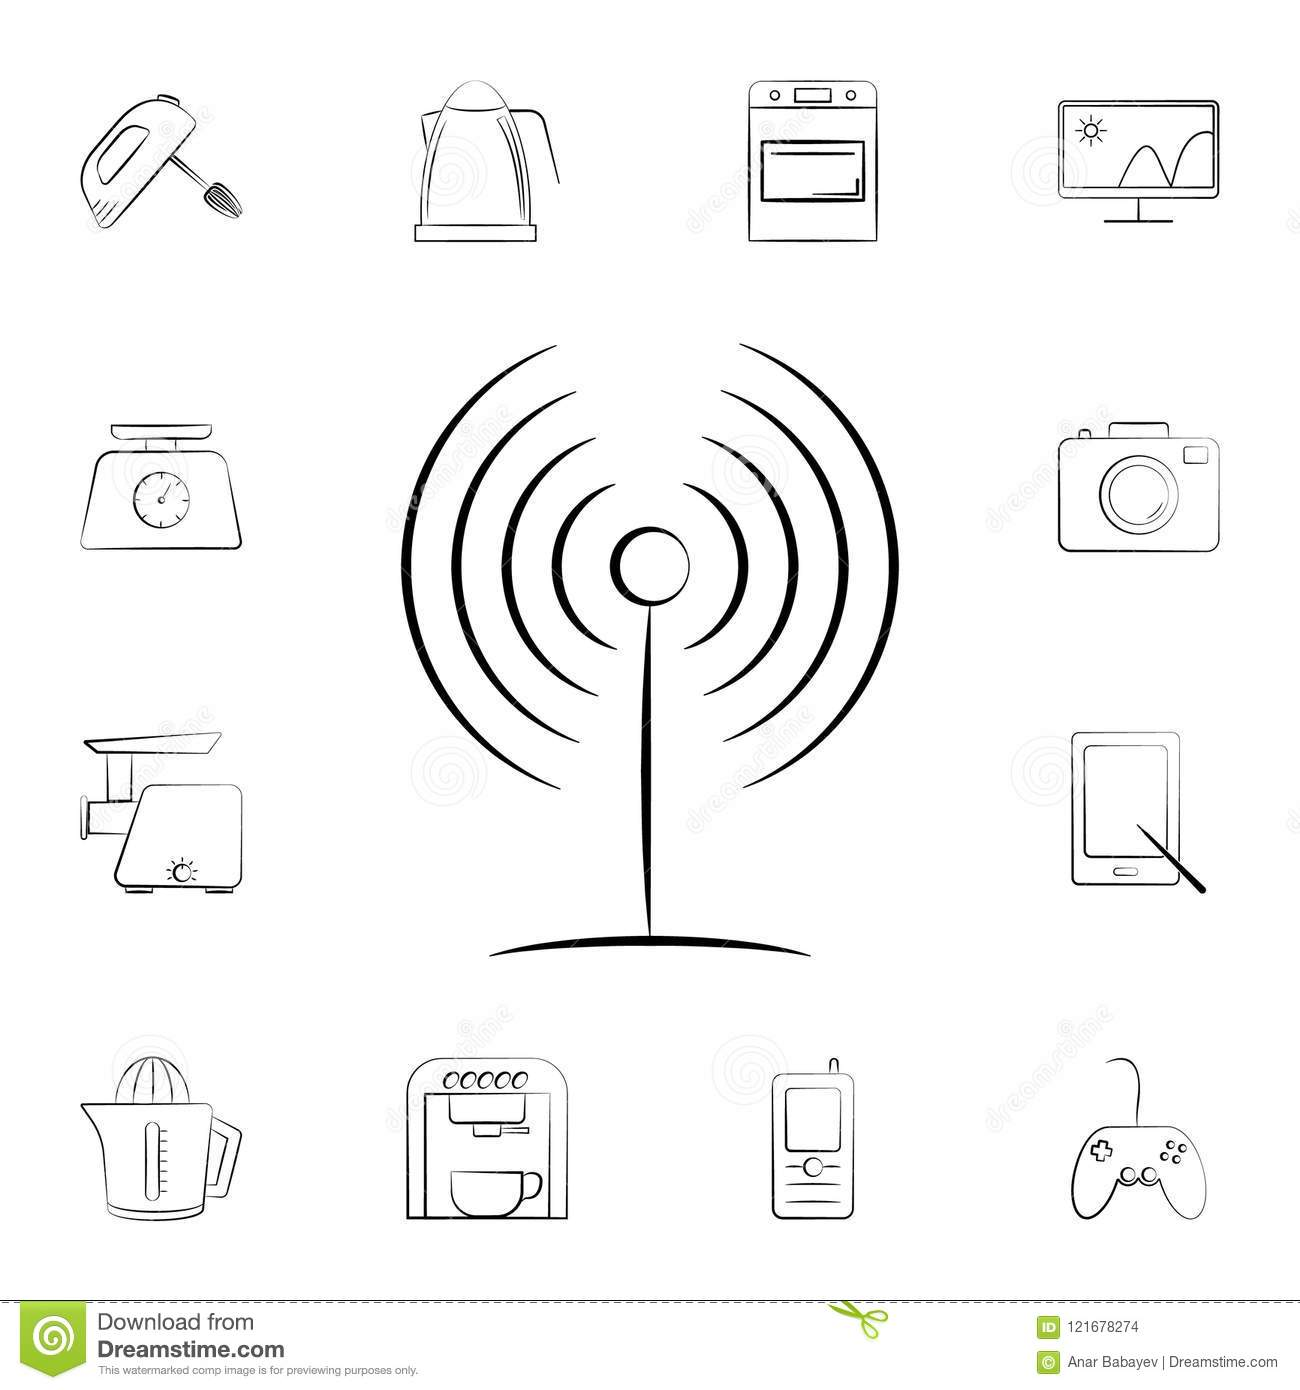 Home Network Equipment Connection Set Vector Vector